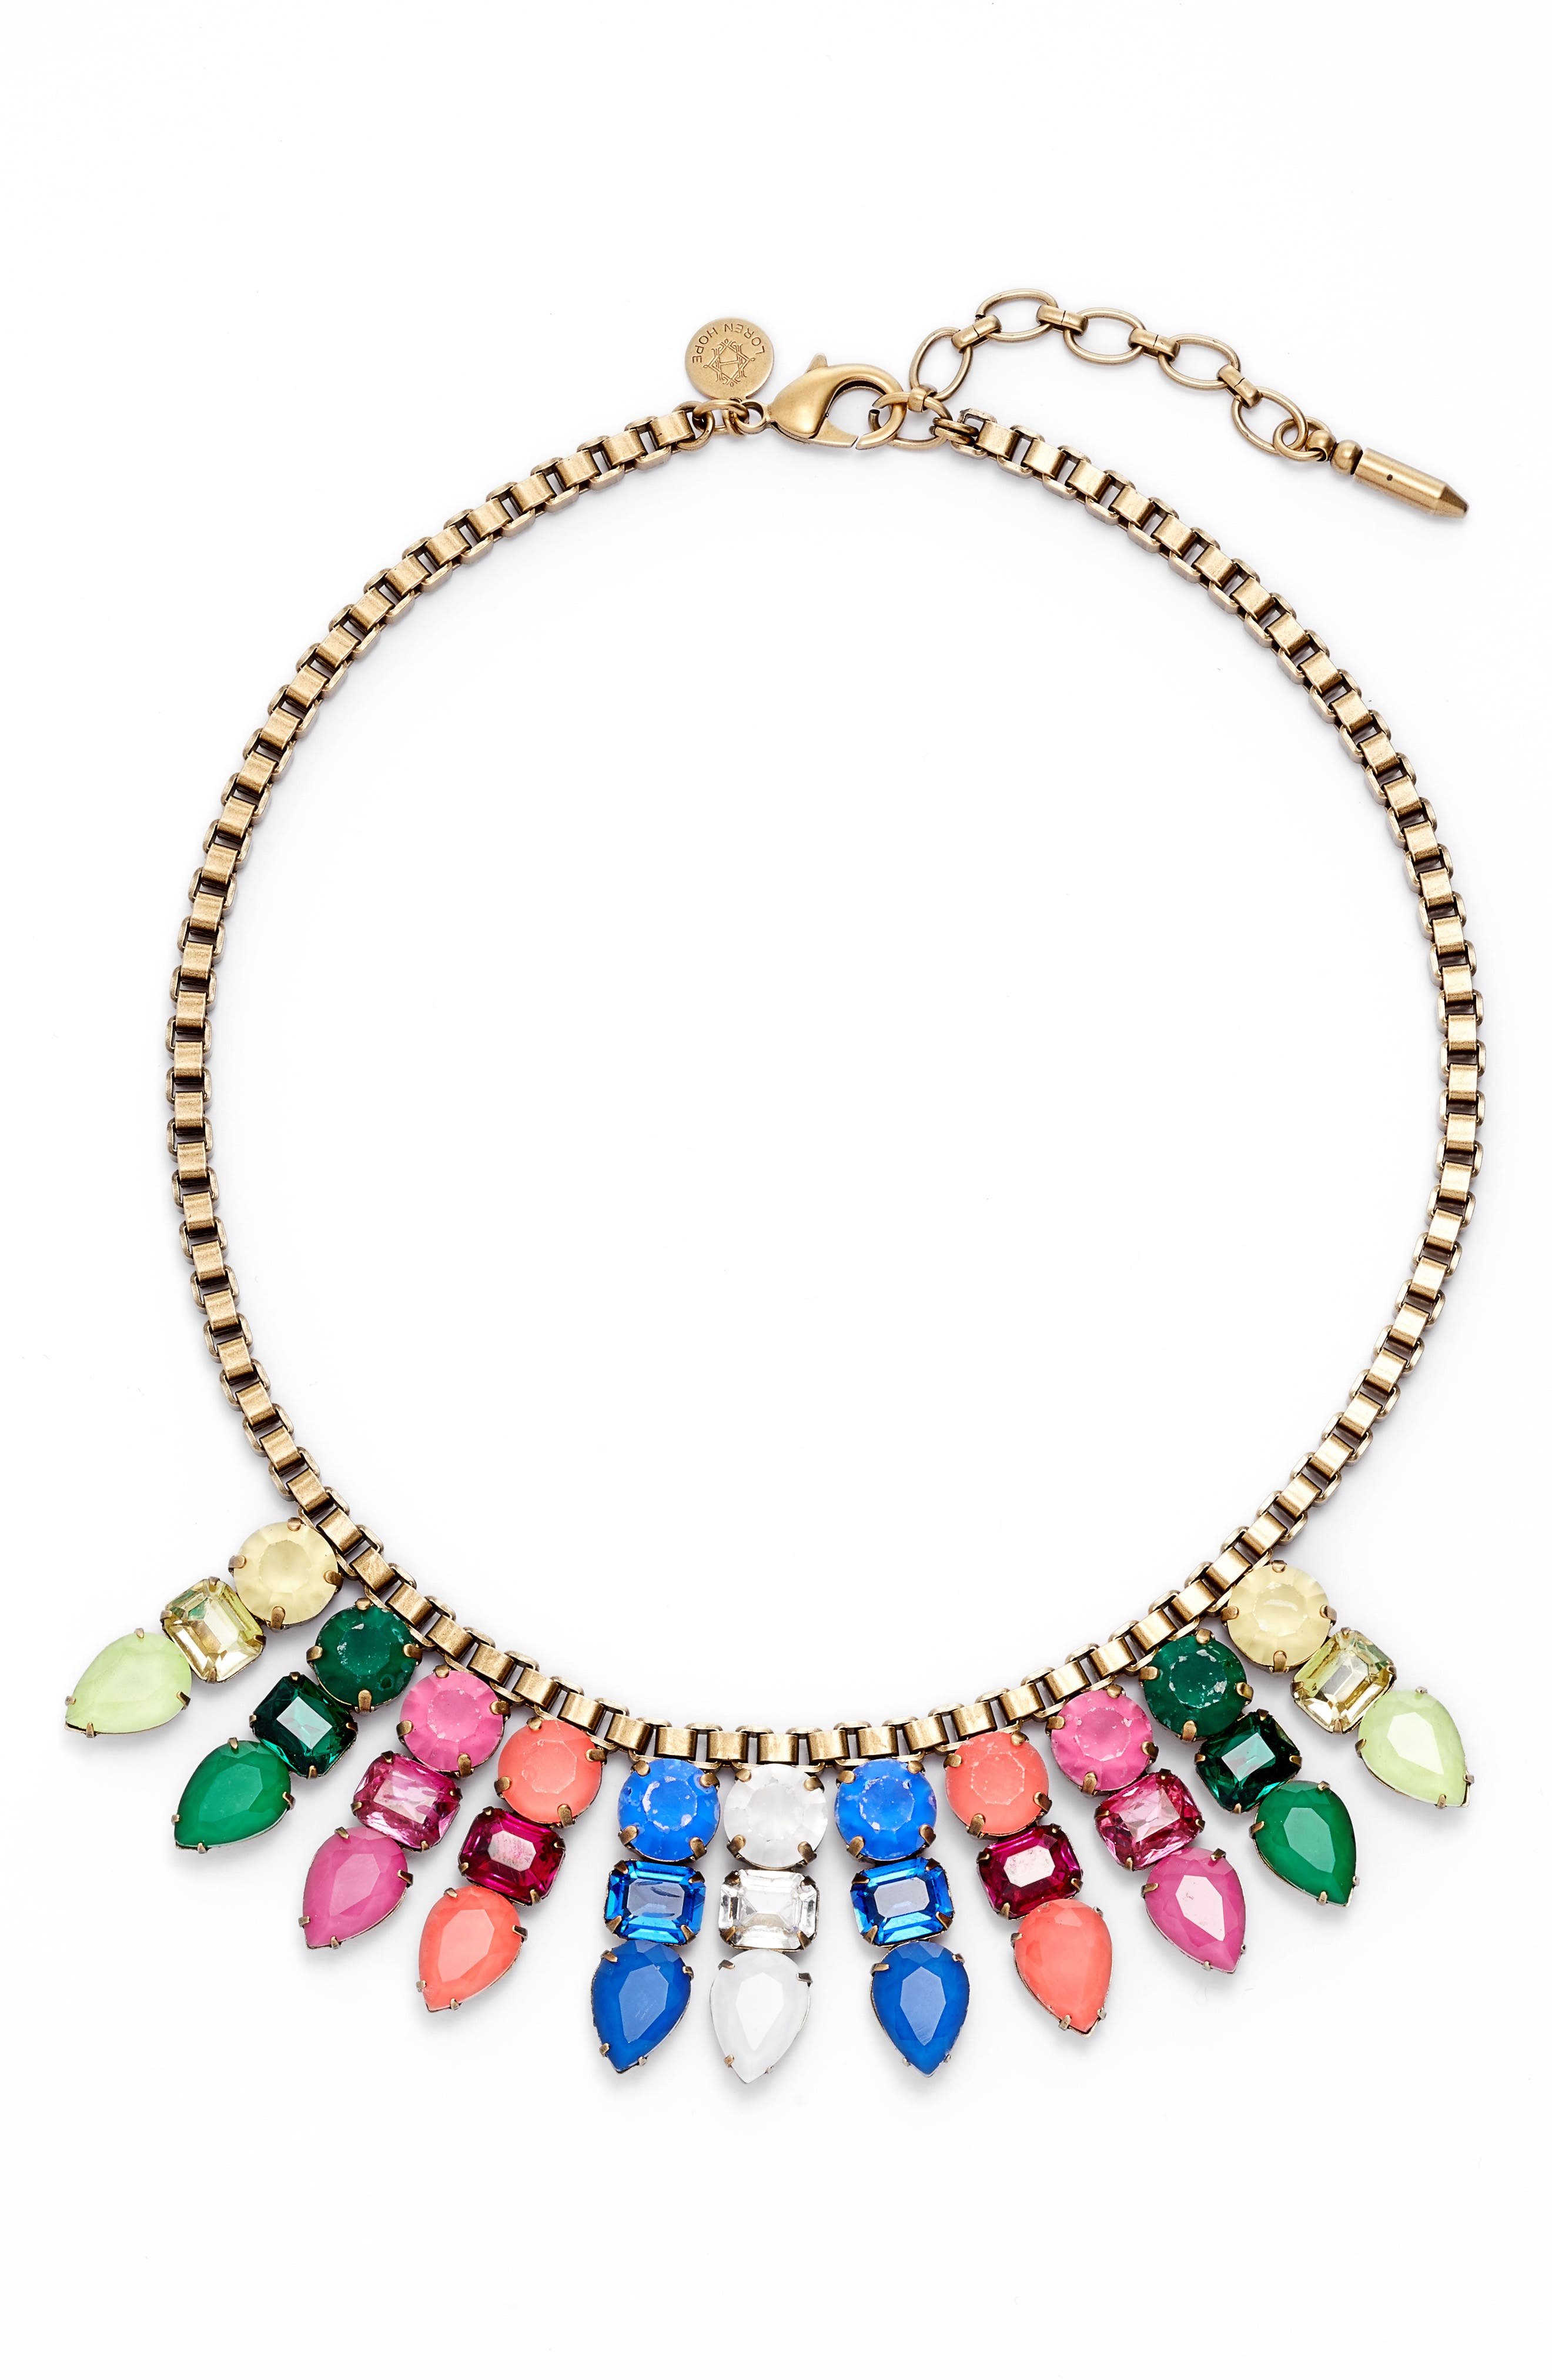 Jewel Bib Necklace,                             Main thumbnail 1, color,                             401